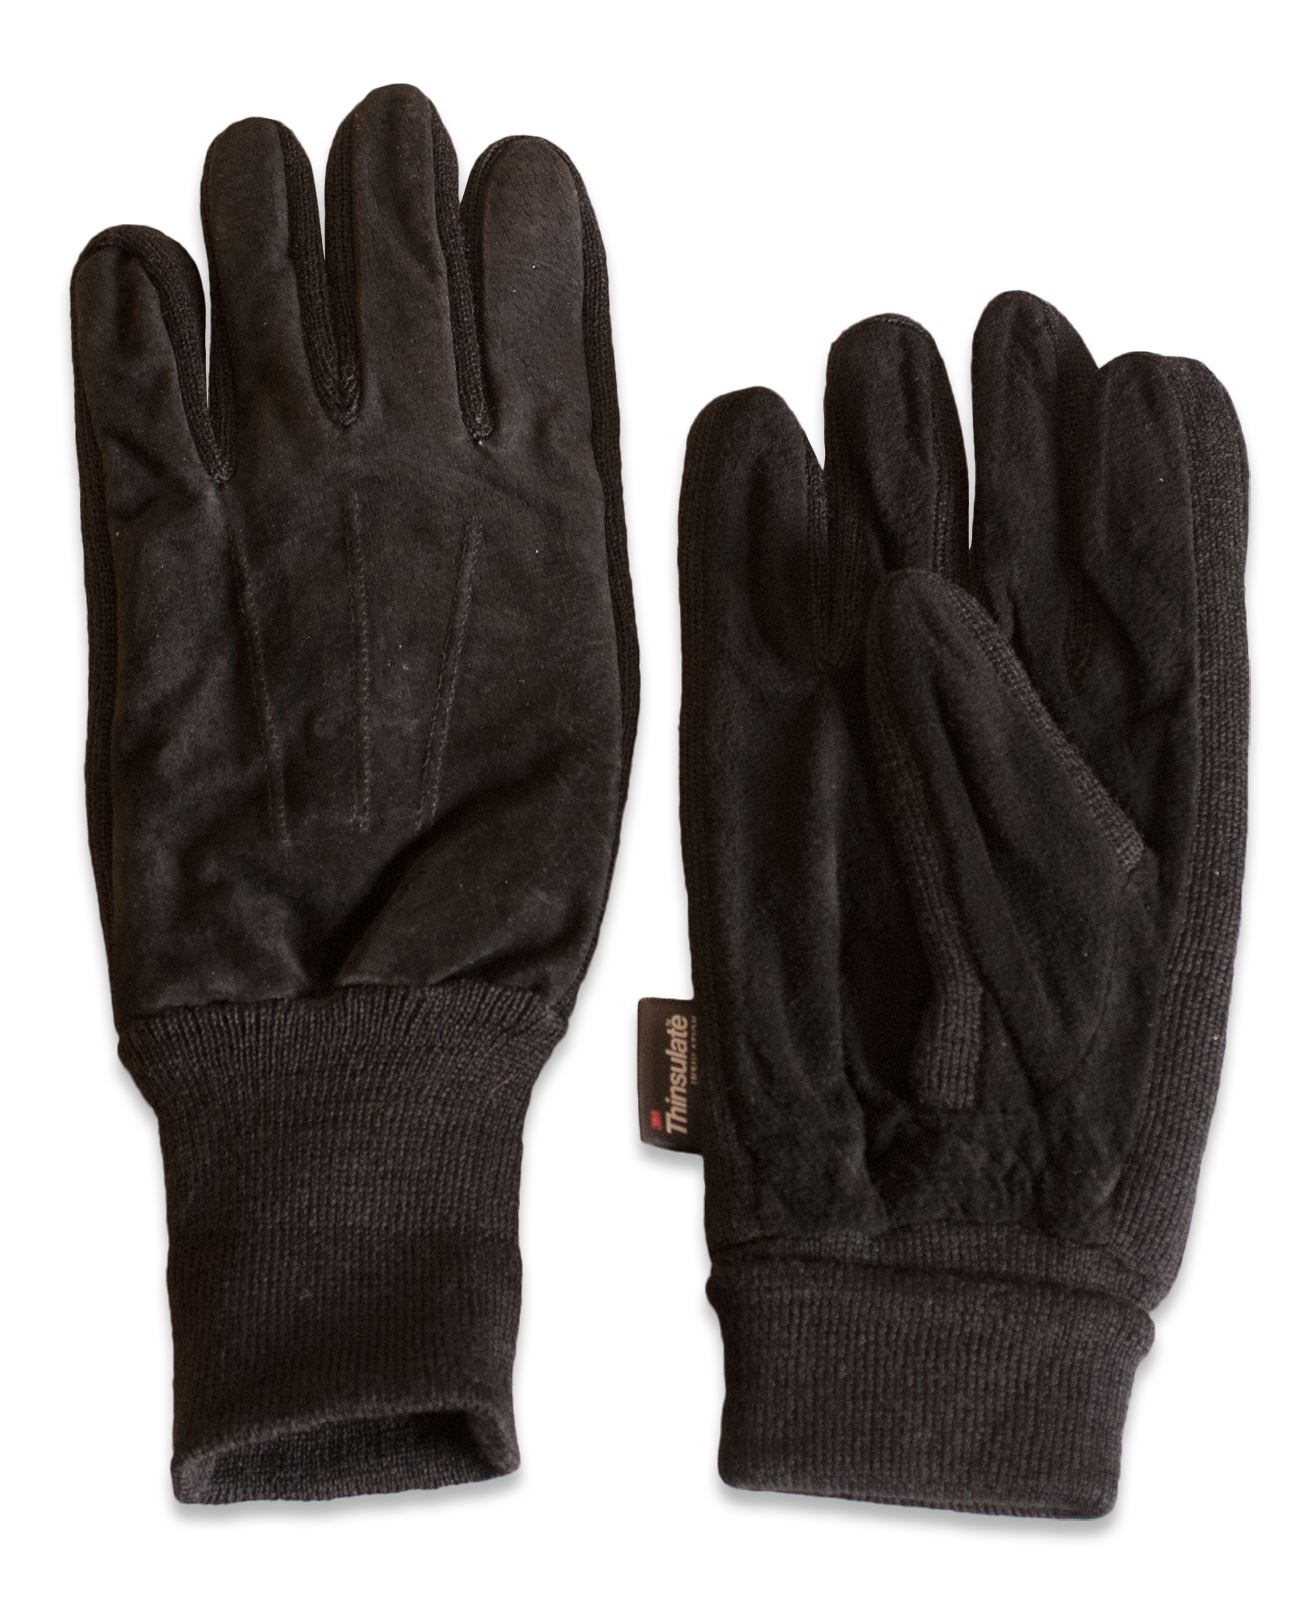 Womens black leather gloves medium -  Picture 3 Of 16